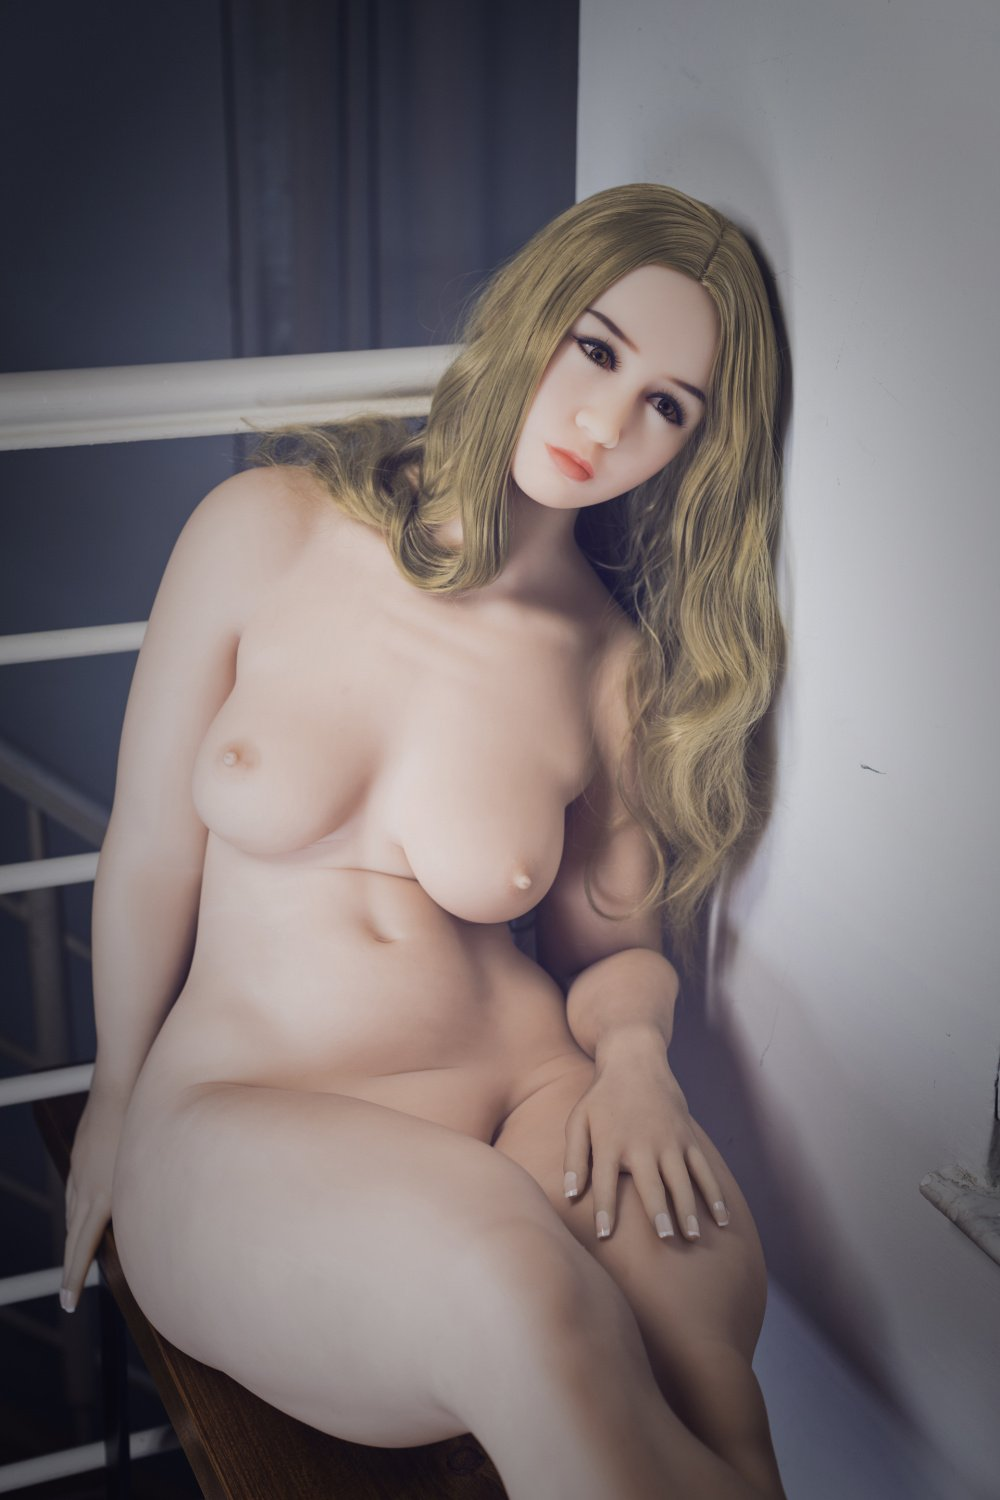 avalon 156cm brown hair curvy flat chested tpe wm bbw sex doll(5)